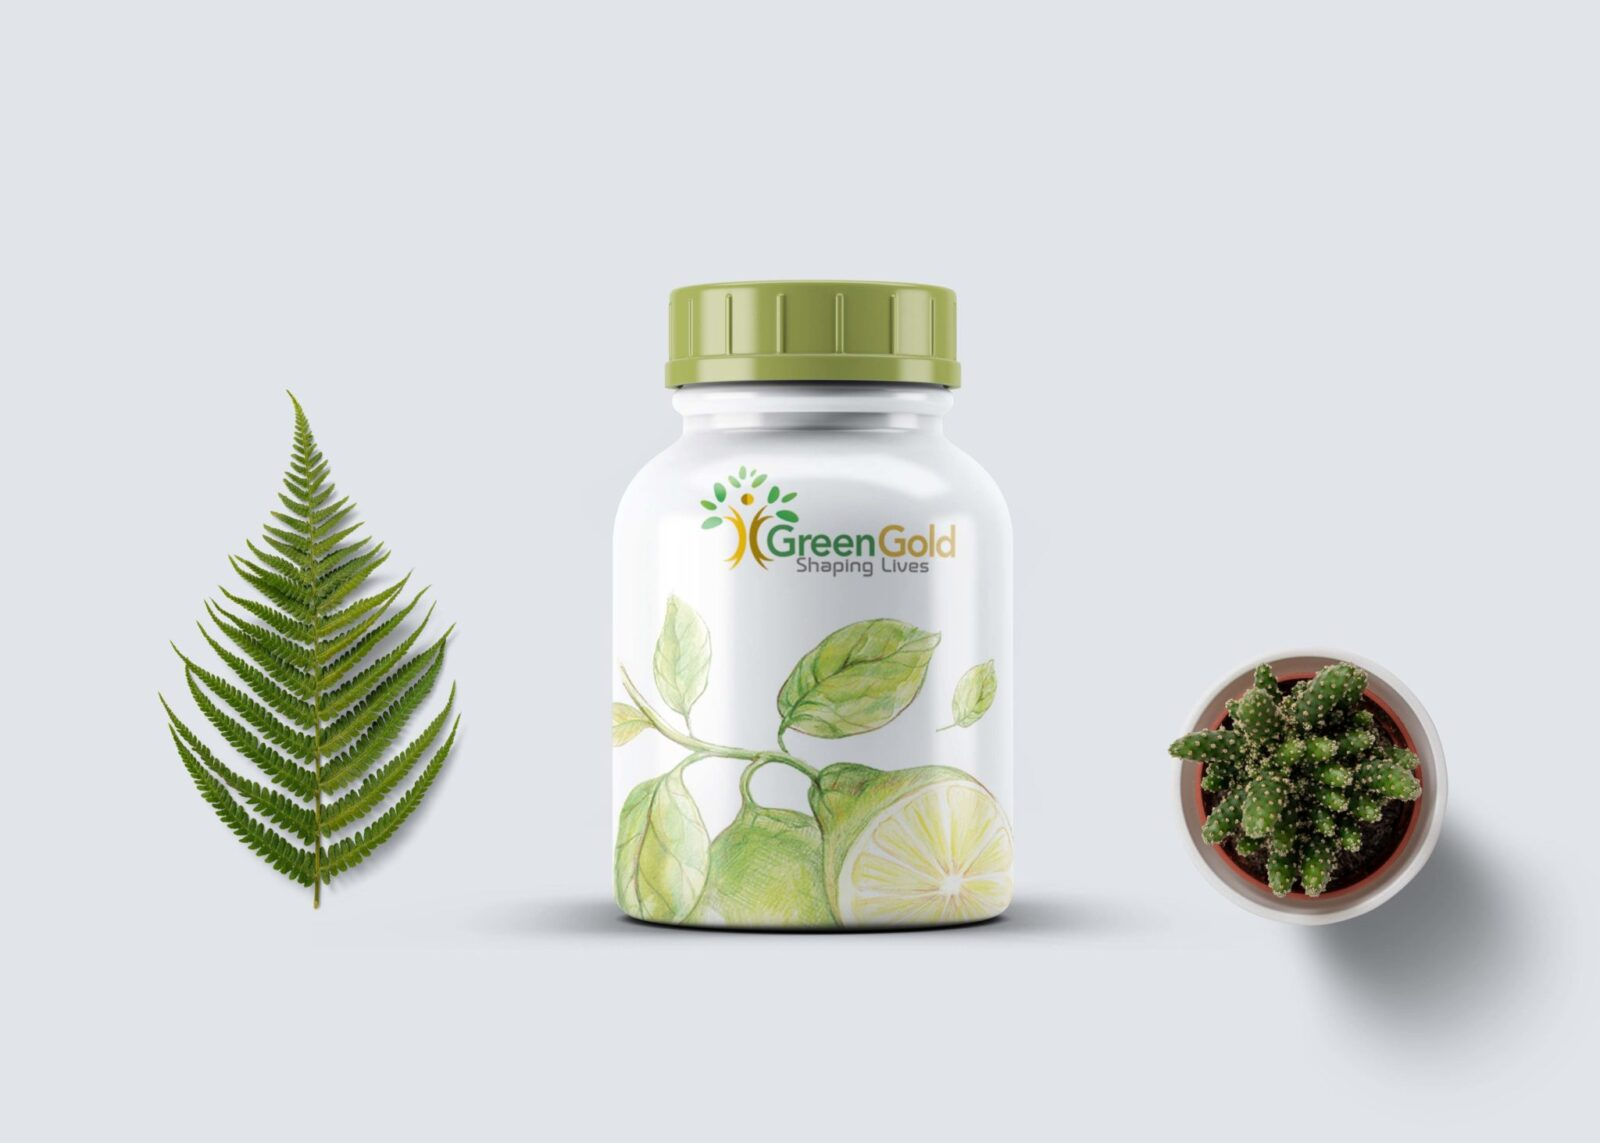 Greengold Pill Bottle Label Mockup